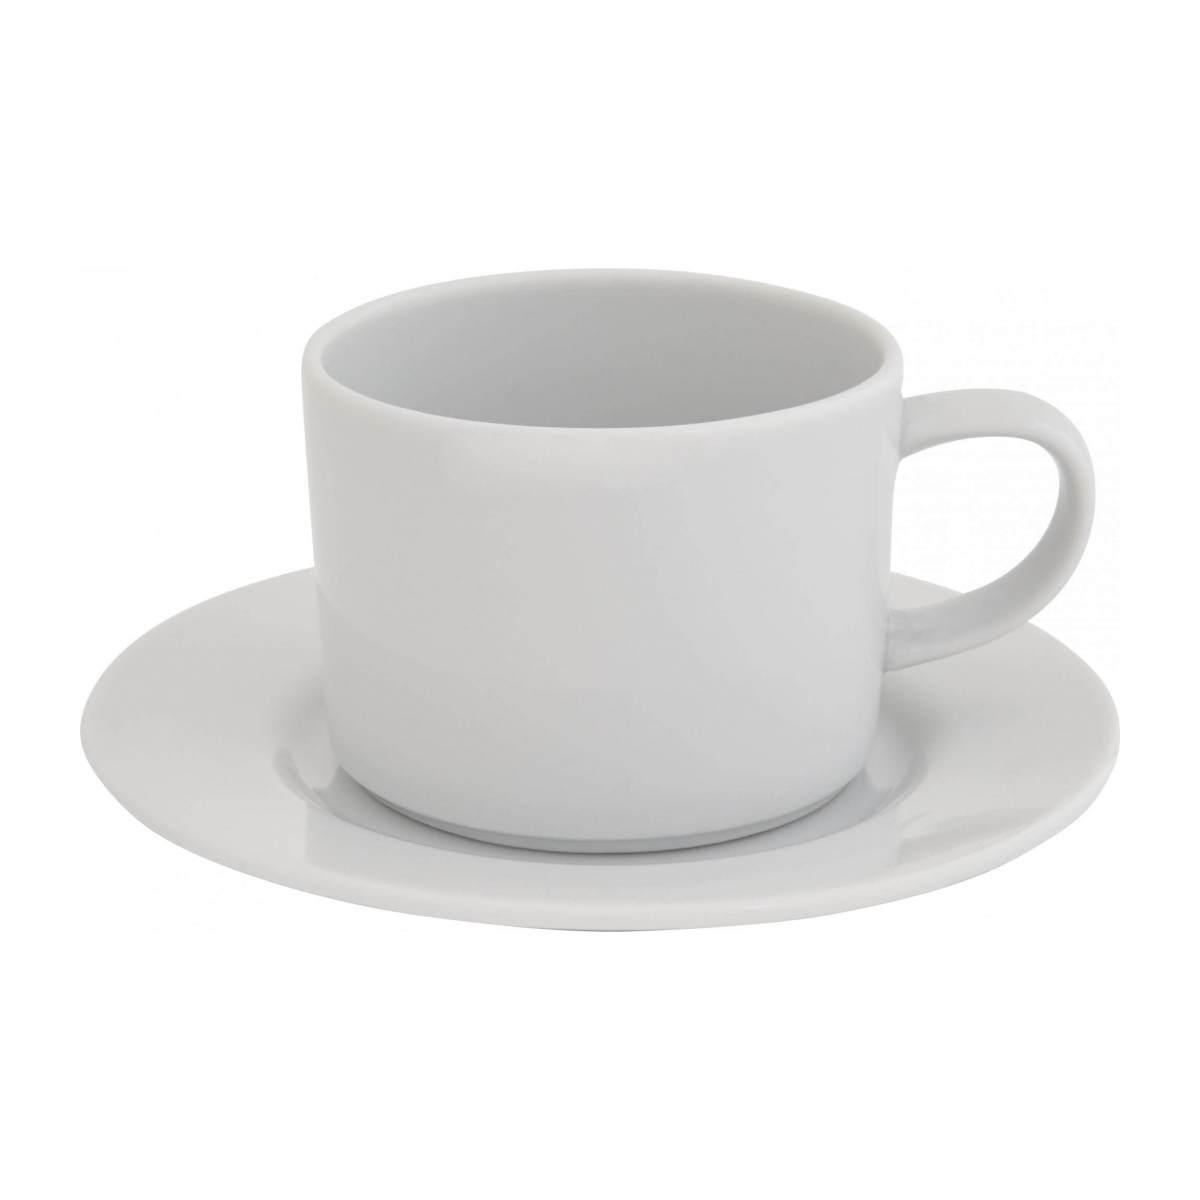 tea cup and saucer n°2